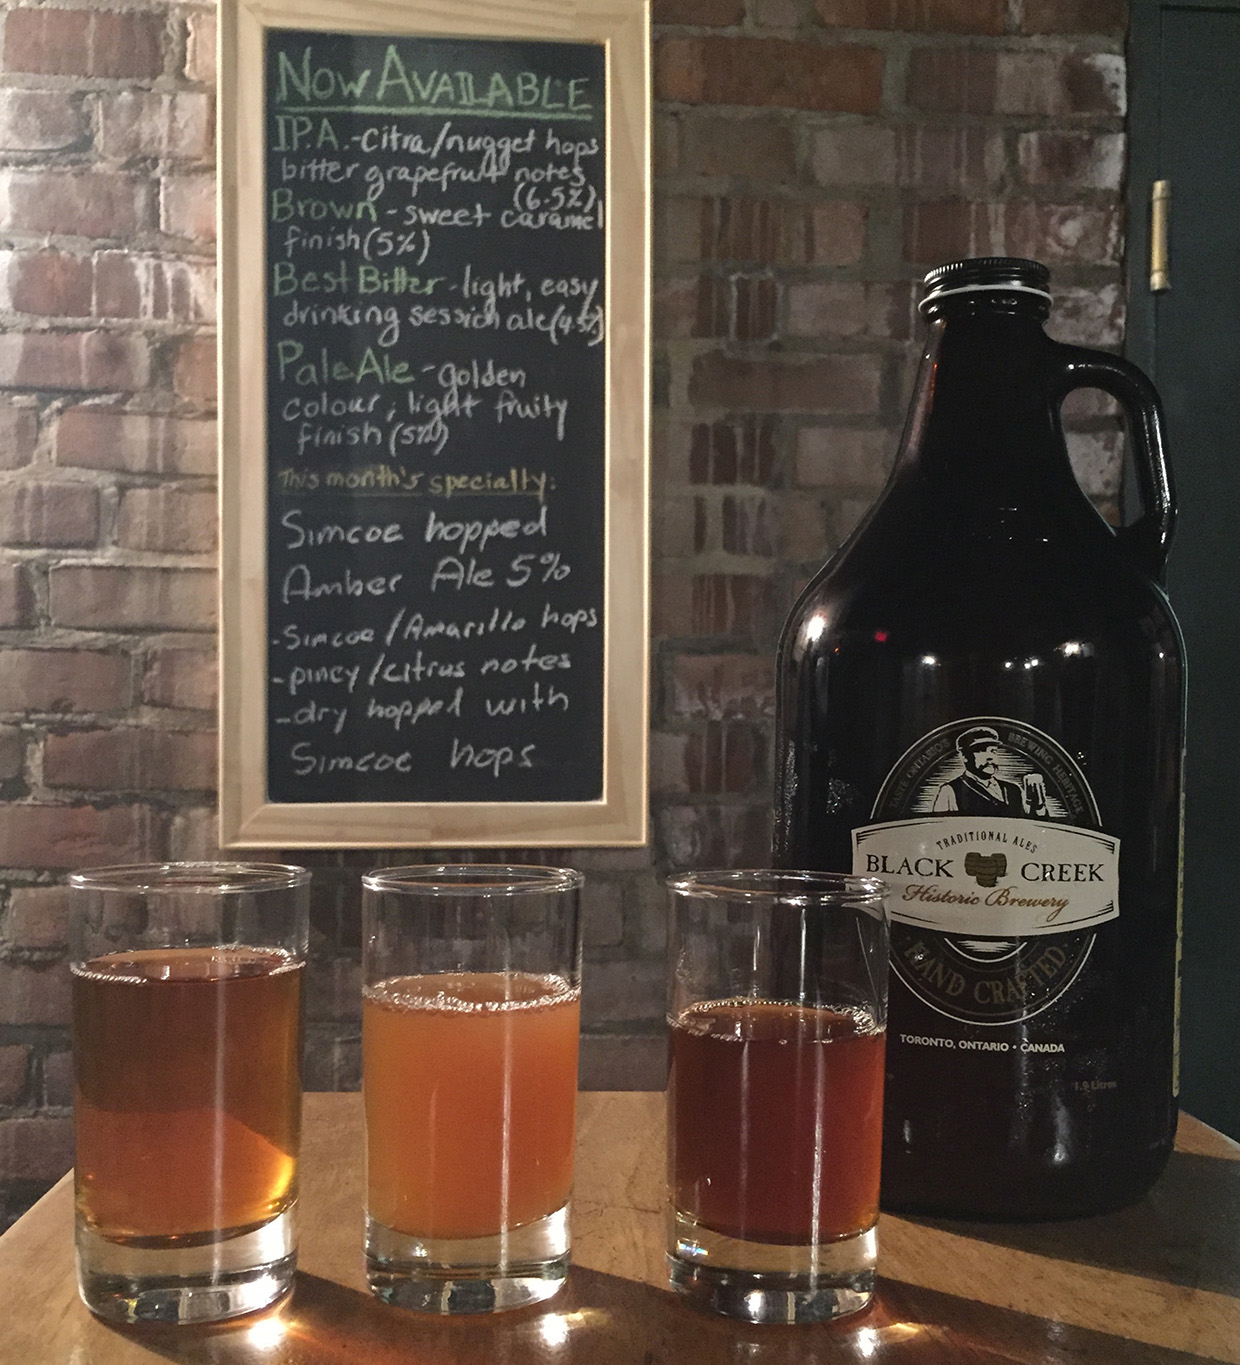 growler and beer samples at Black Creek Historic Brewery